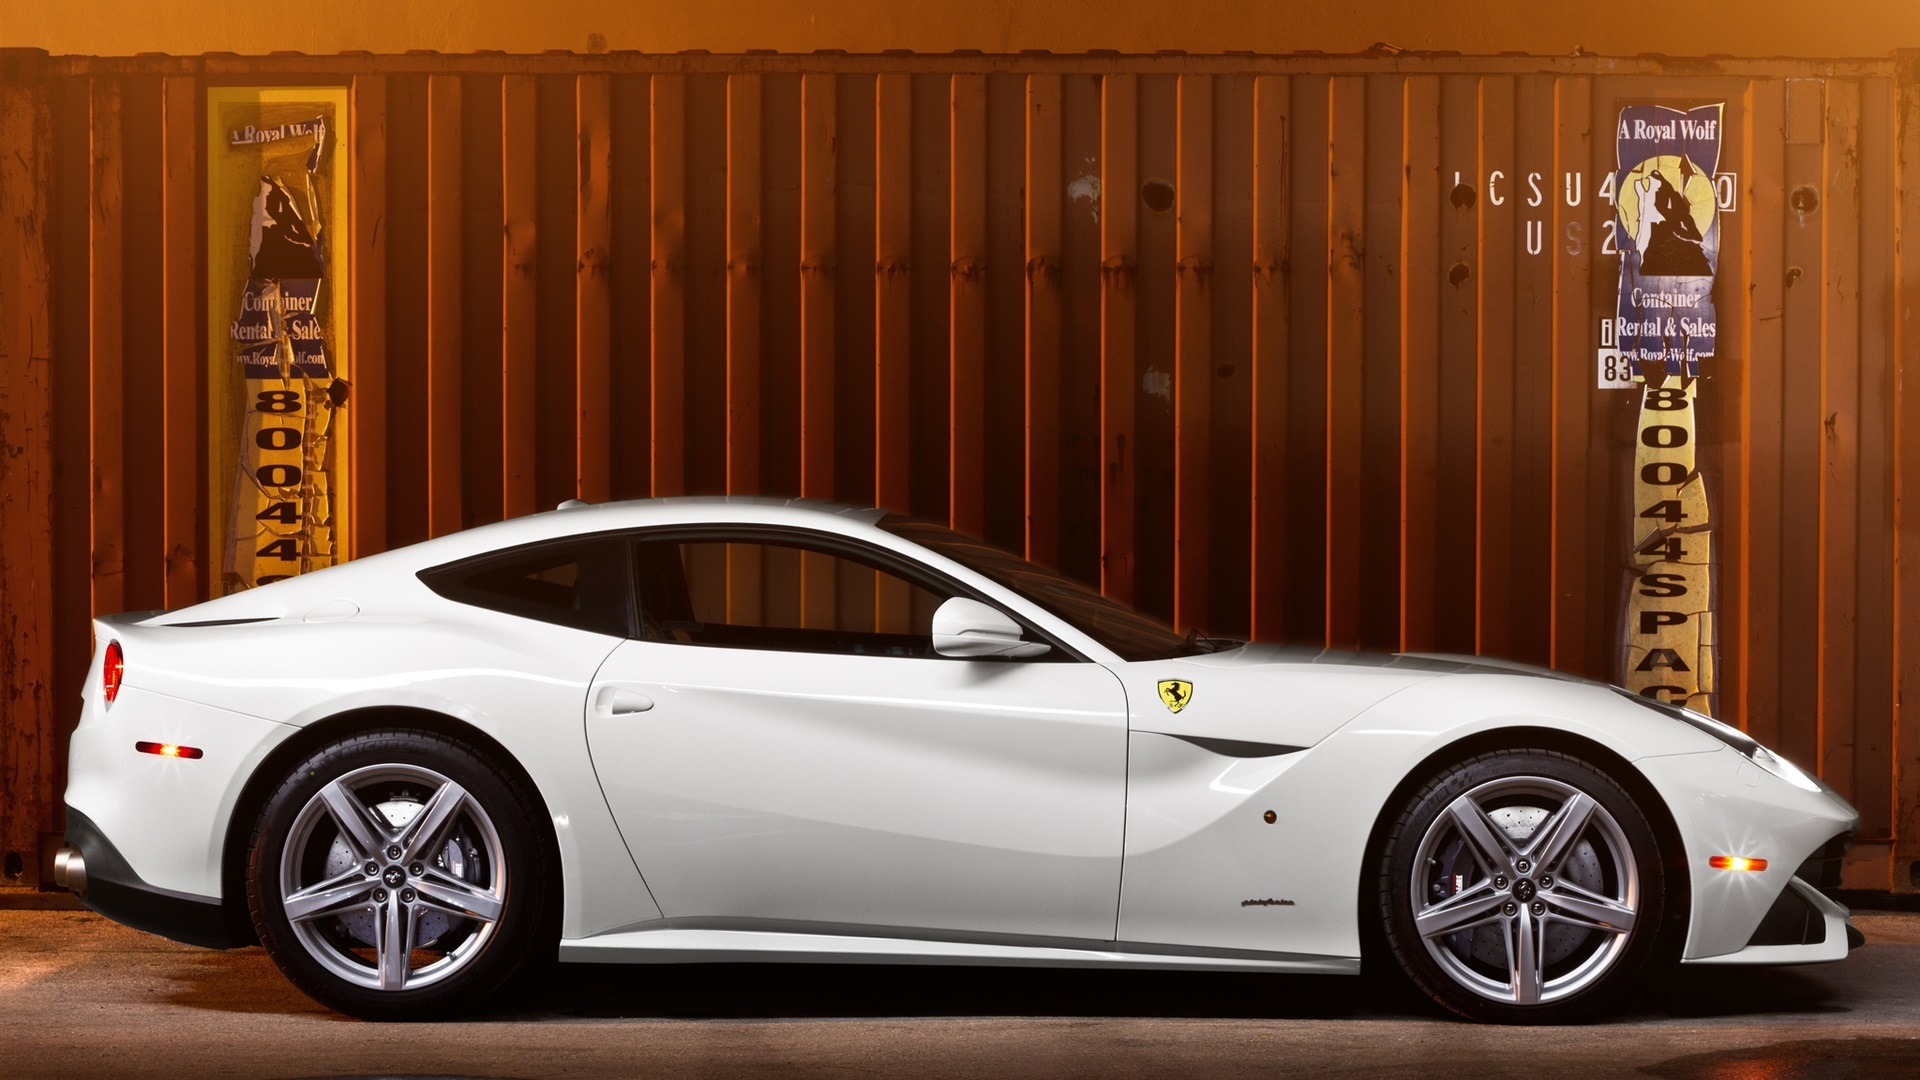 Wallpaper ferrari f12 white supercar side view 1920x1200 hd picture image - Car side view wallpaper ...